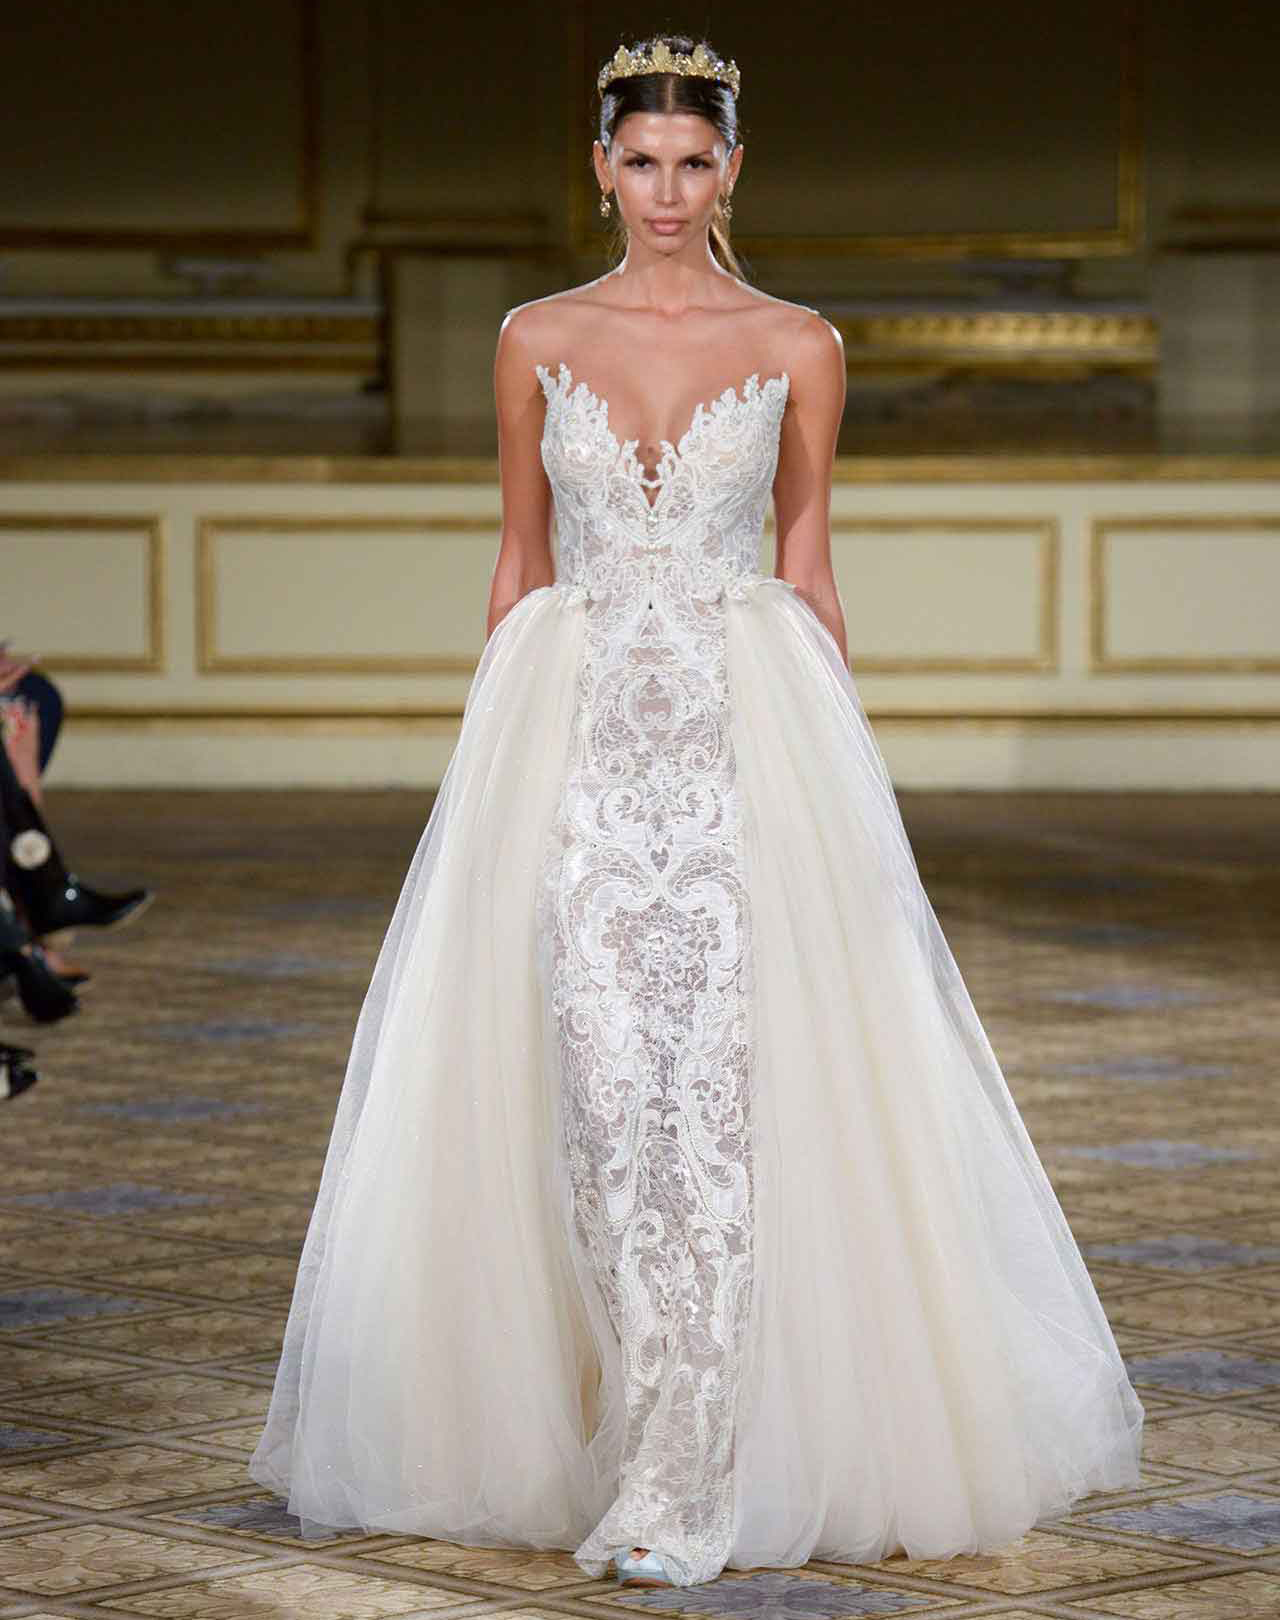 Sofia vergara wedding gown get the look inside weddings for Wedding dress removable skirt